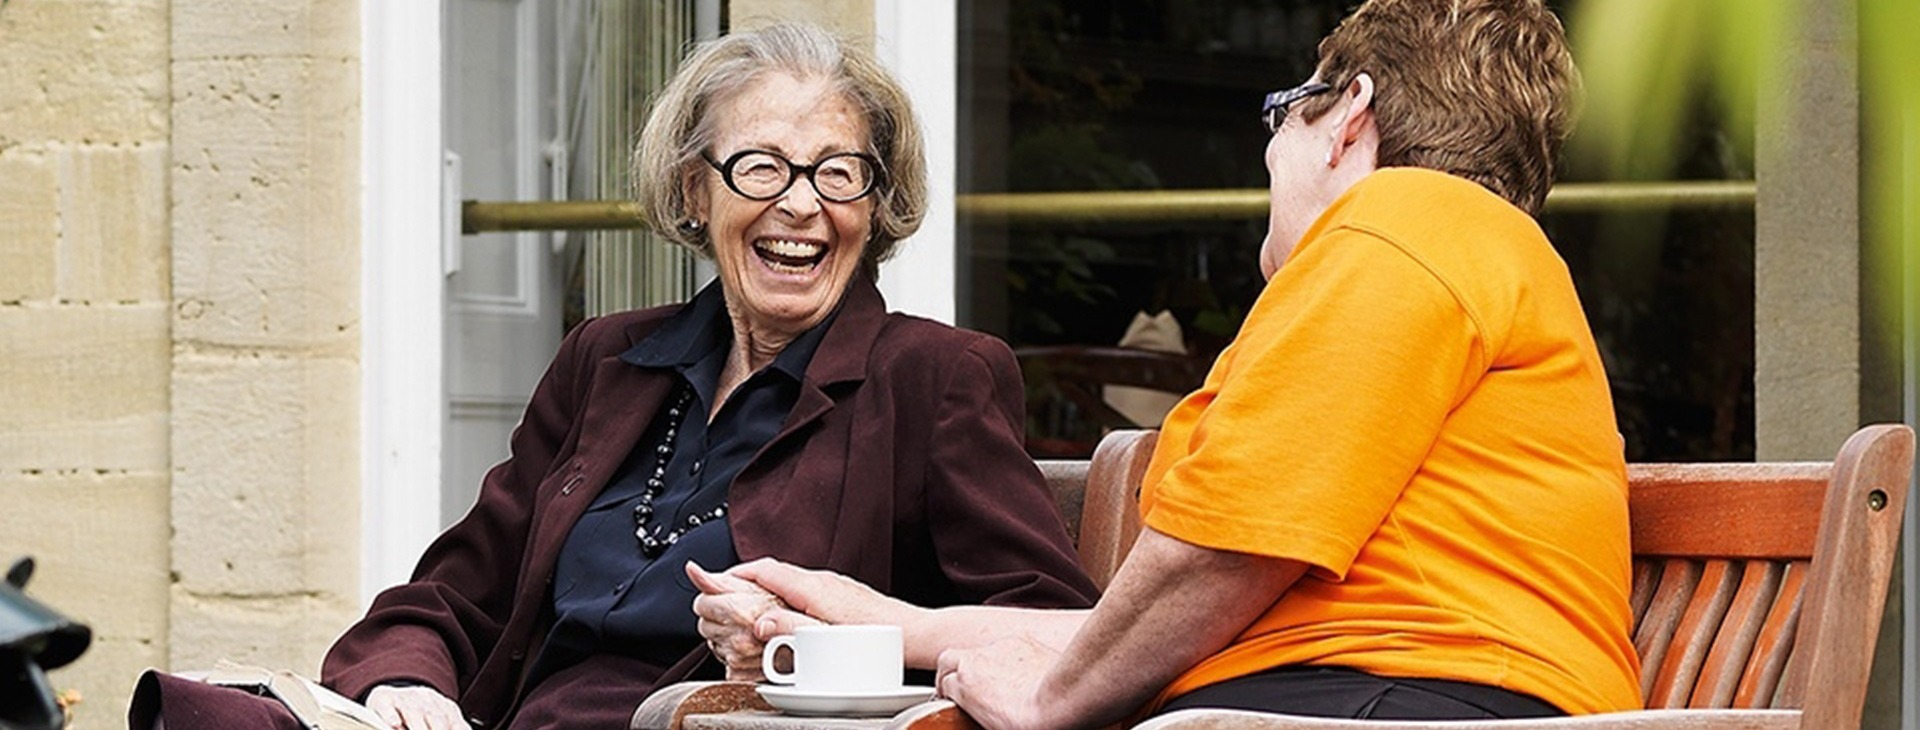 Resident and careworker on a bench laughing